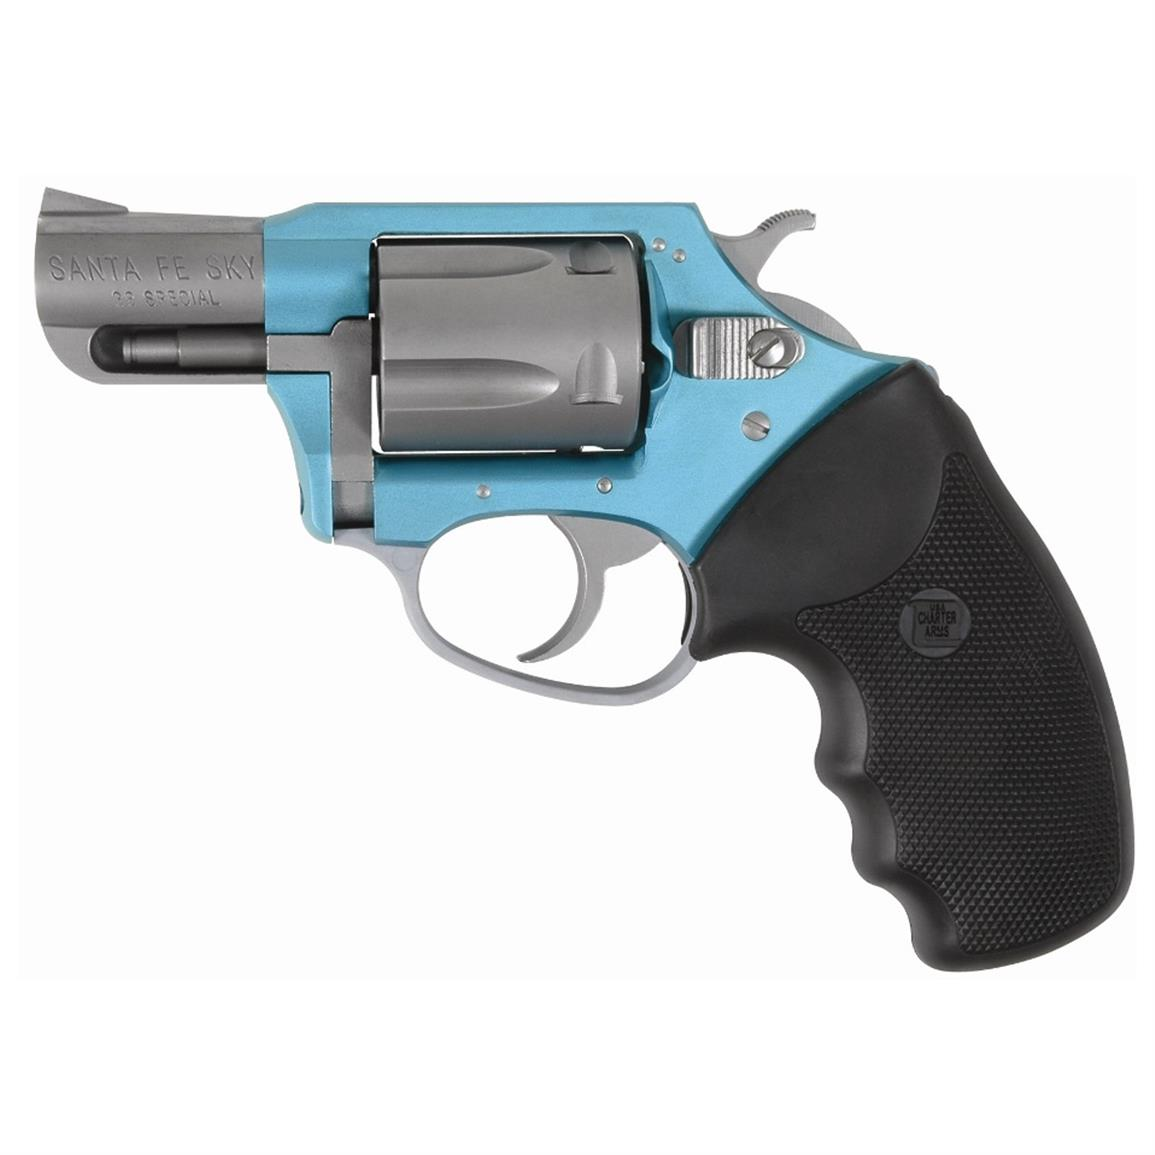 "Charter Arms Santa Fe Undercover Lite, Revolver, .38 Special, 2"" Barrel, 5 Rounds"